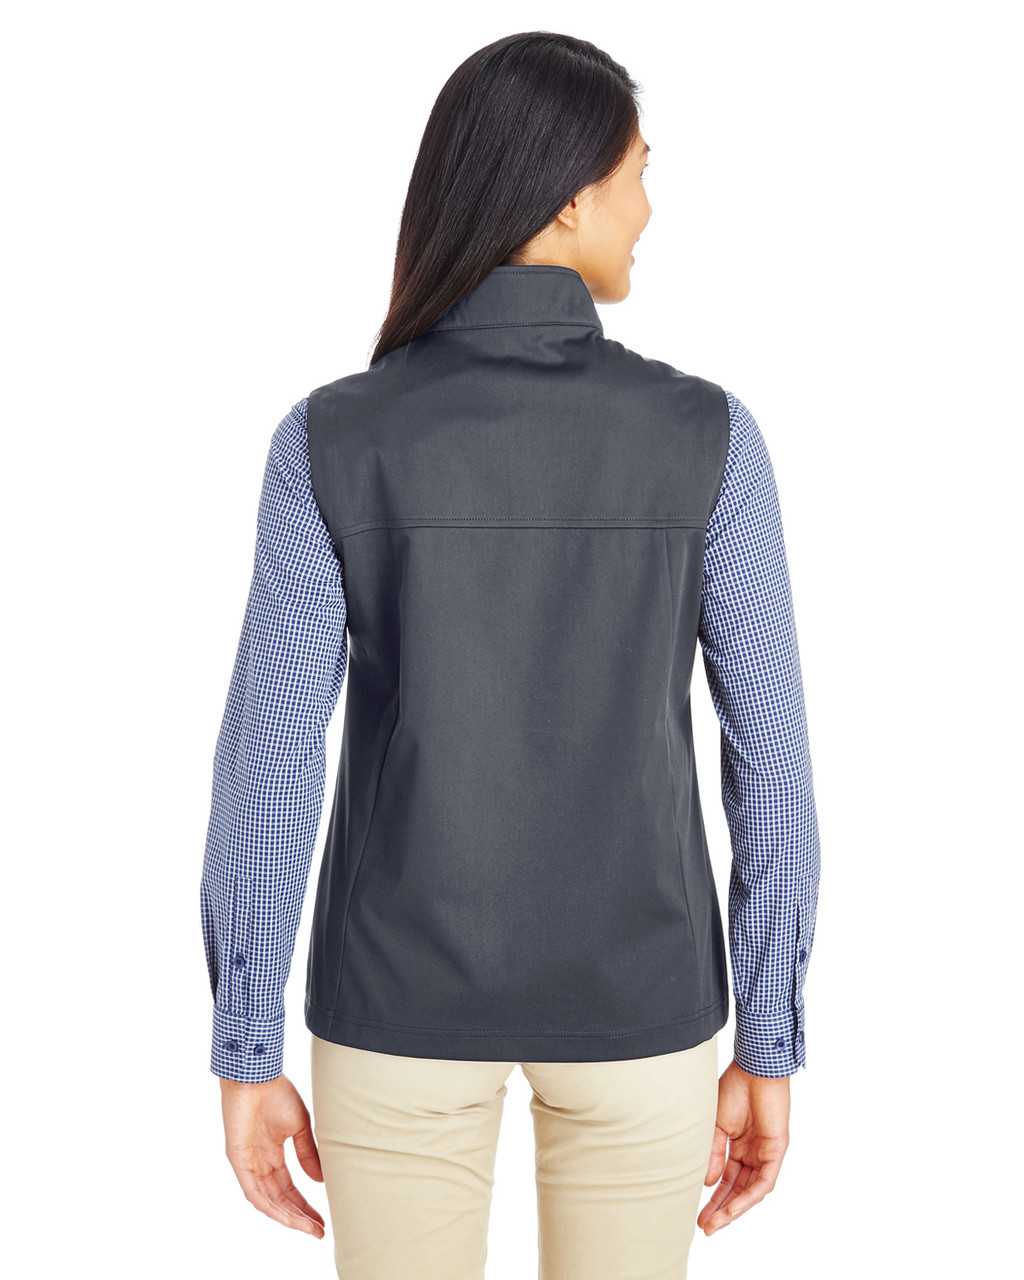 Carbon - Back CE709W Ash City - Core 365 Ladies' Techno Lite Three-Layer Knit Tech-Shell Quarter-Zip Vest | Blankclothing.ca